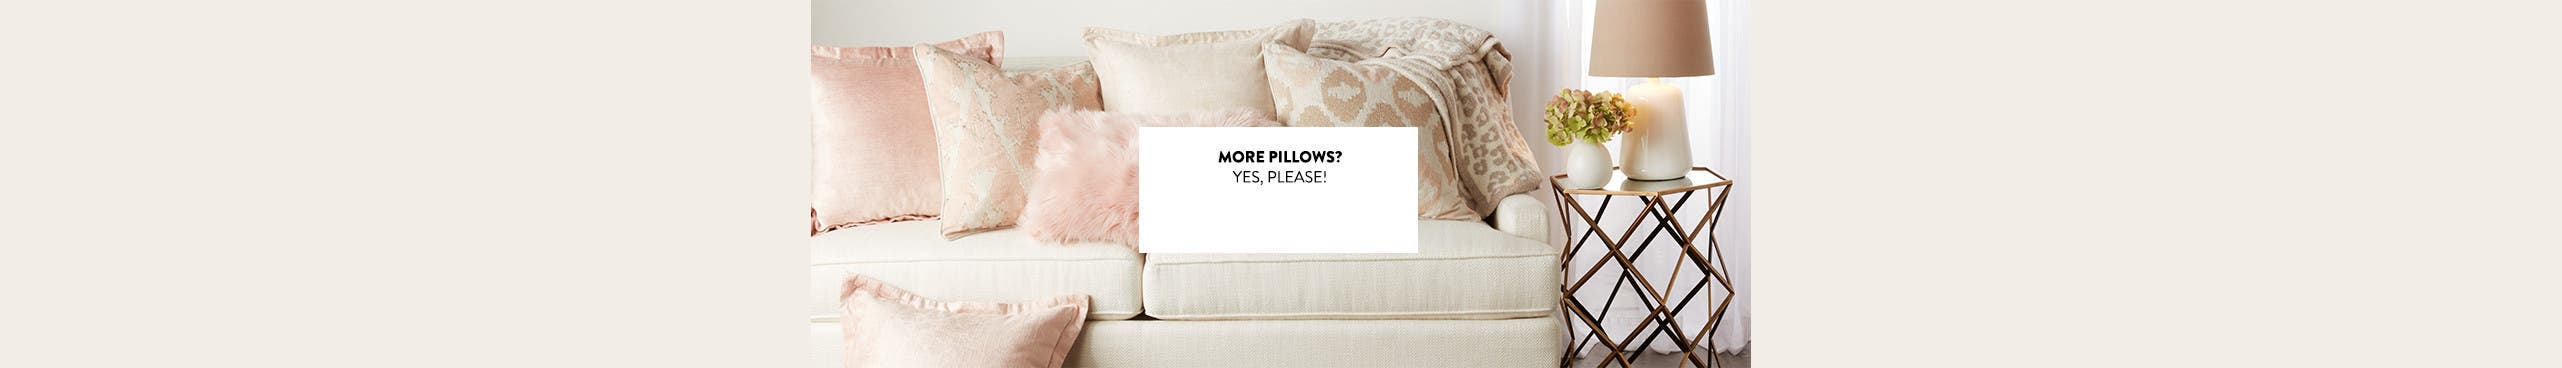 More pillows? Yes, please.